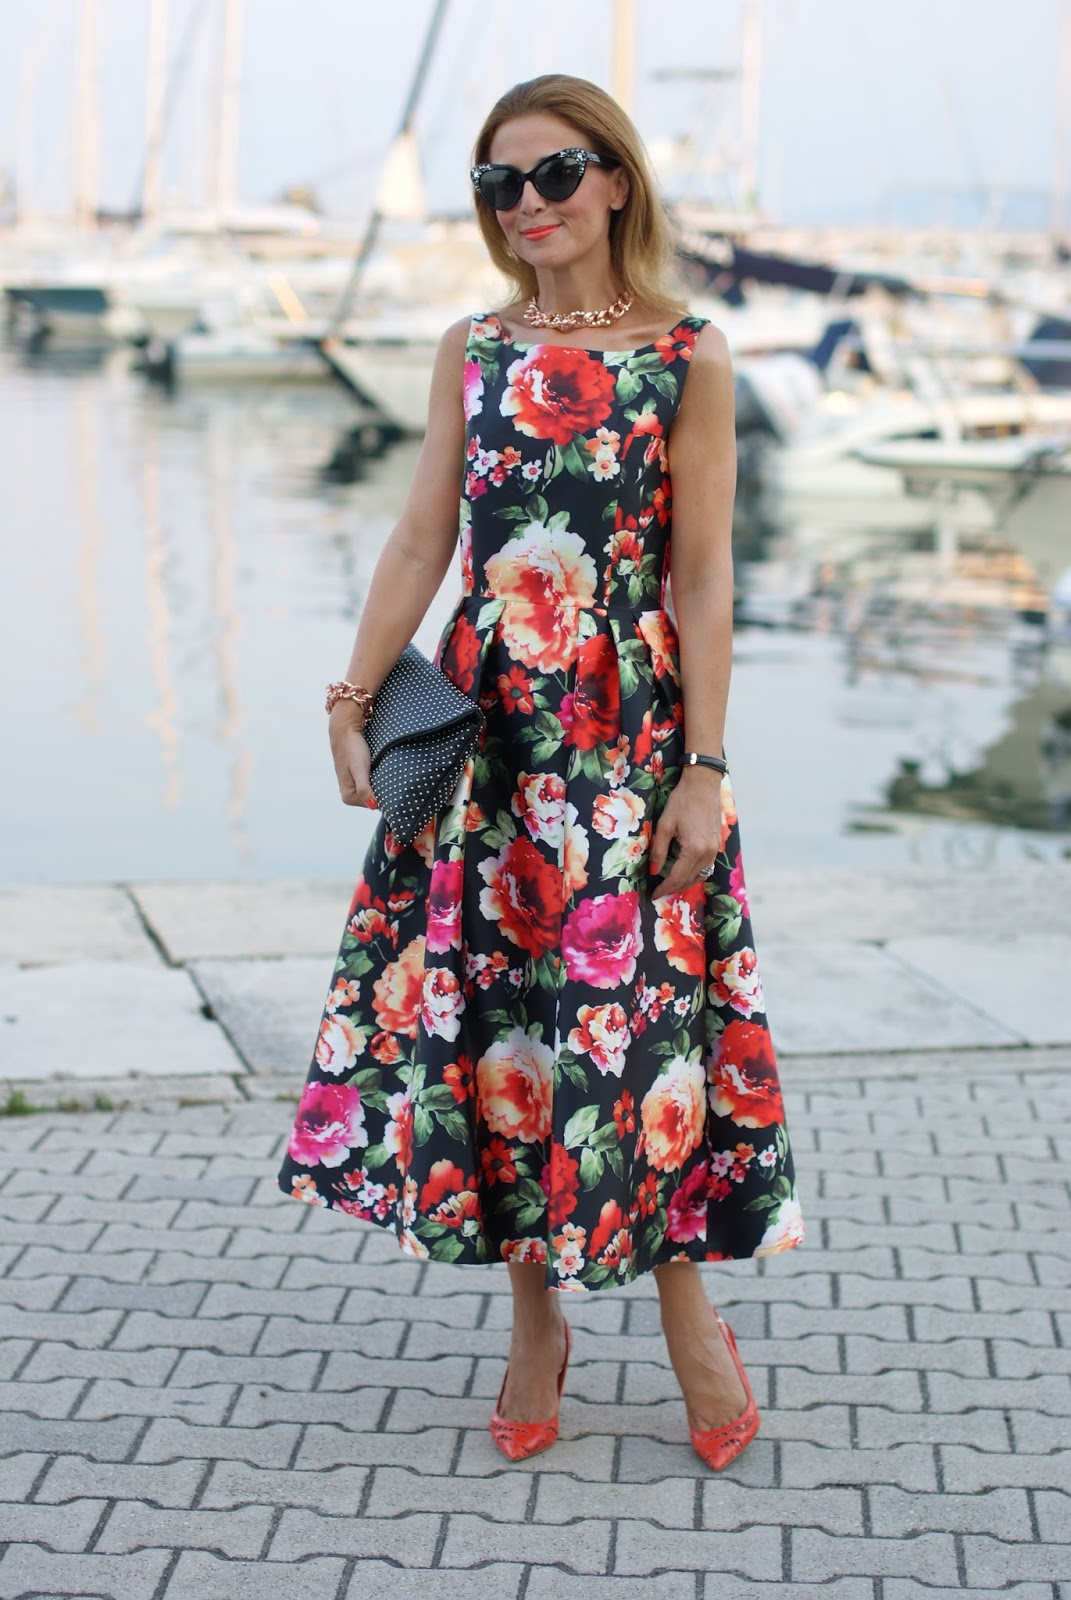 Floral print midi skirt, chic retro style on Fashion and Cookies fashion blog, fashion blogger style